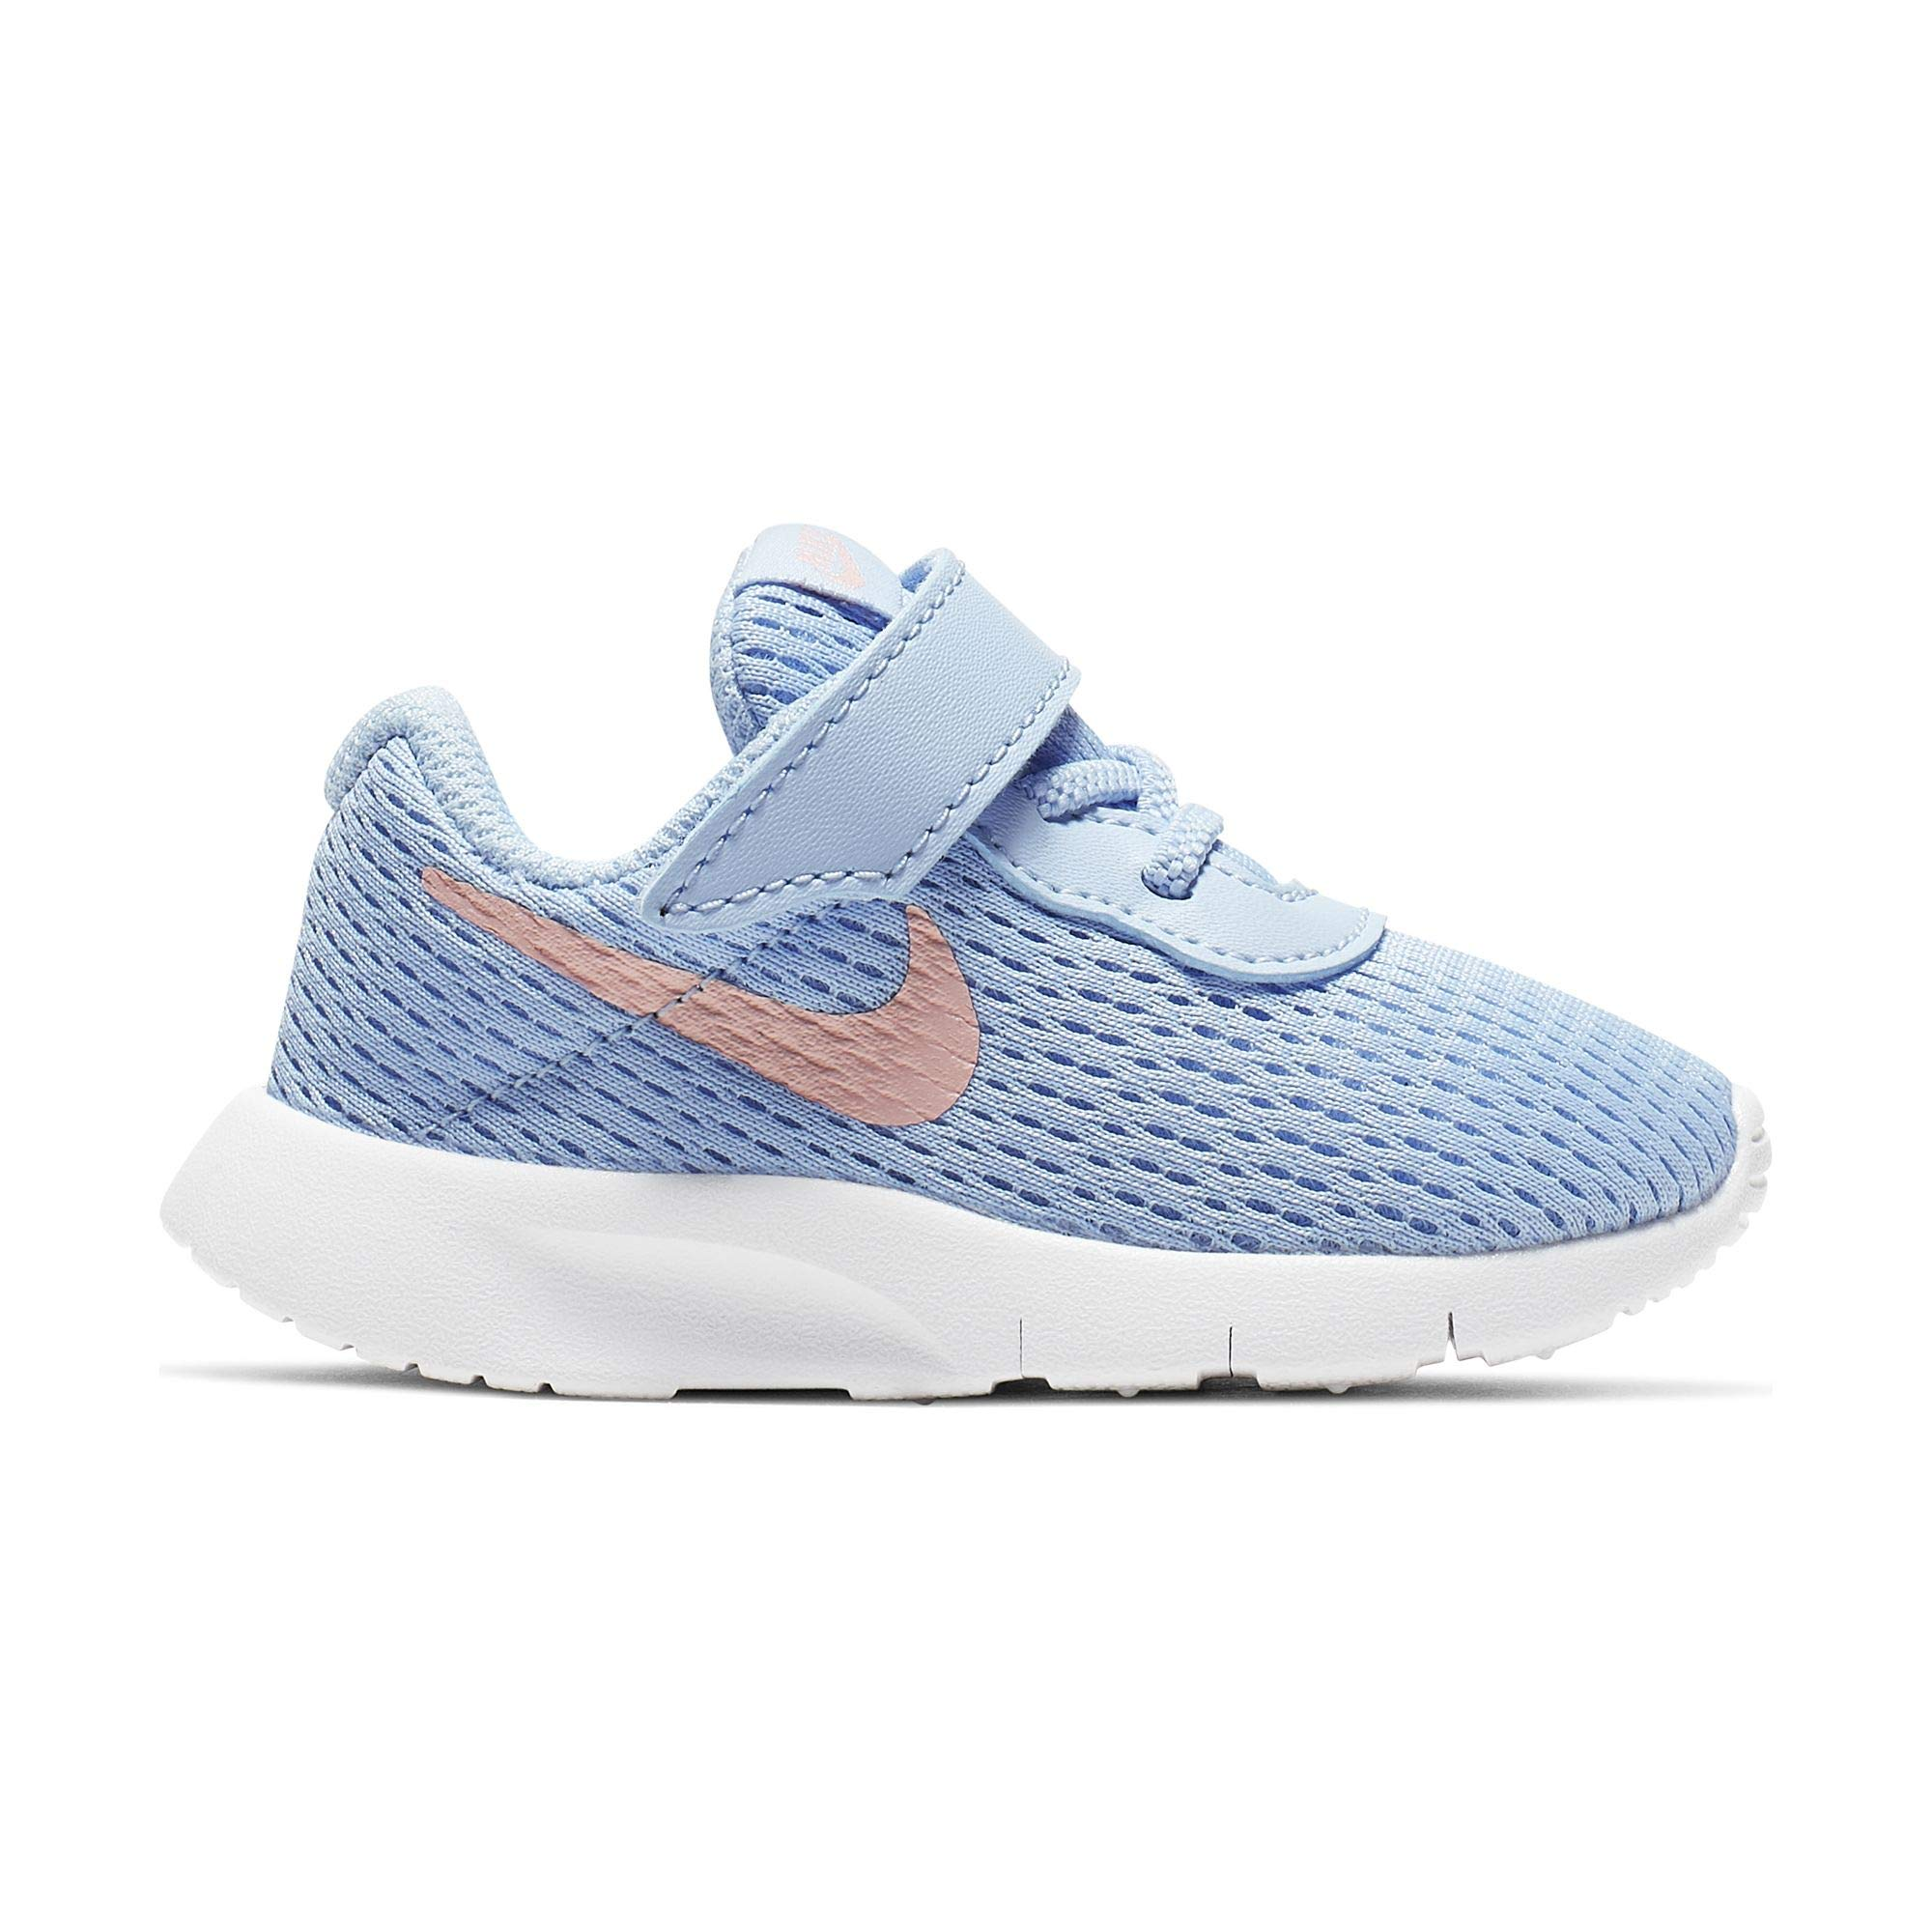 Nike Girl's Tanjun (TD) Toddler Shoe Psychic Blue/Bleached Coral/White Size 5 M US